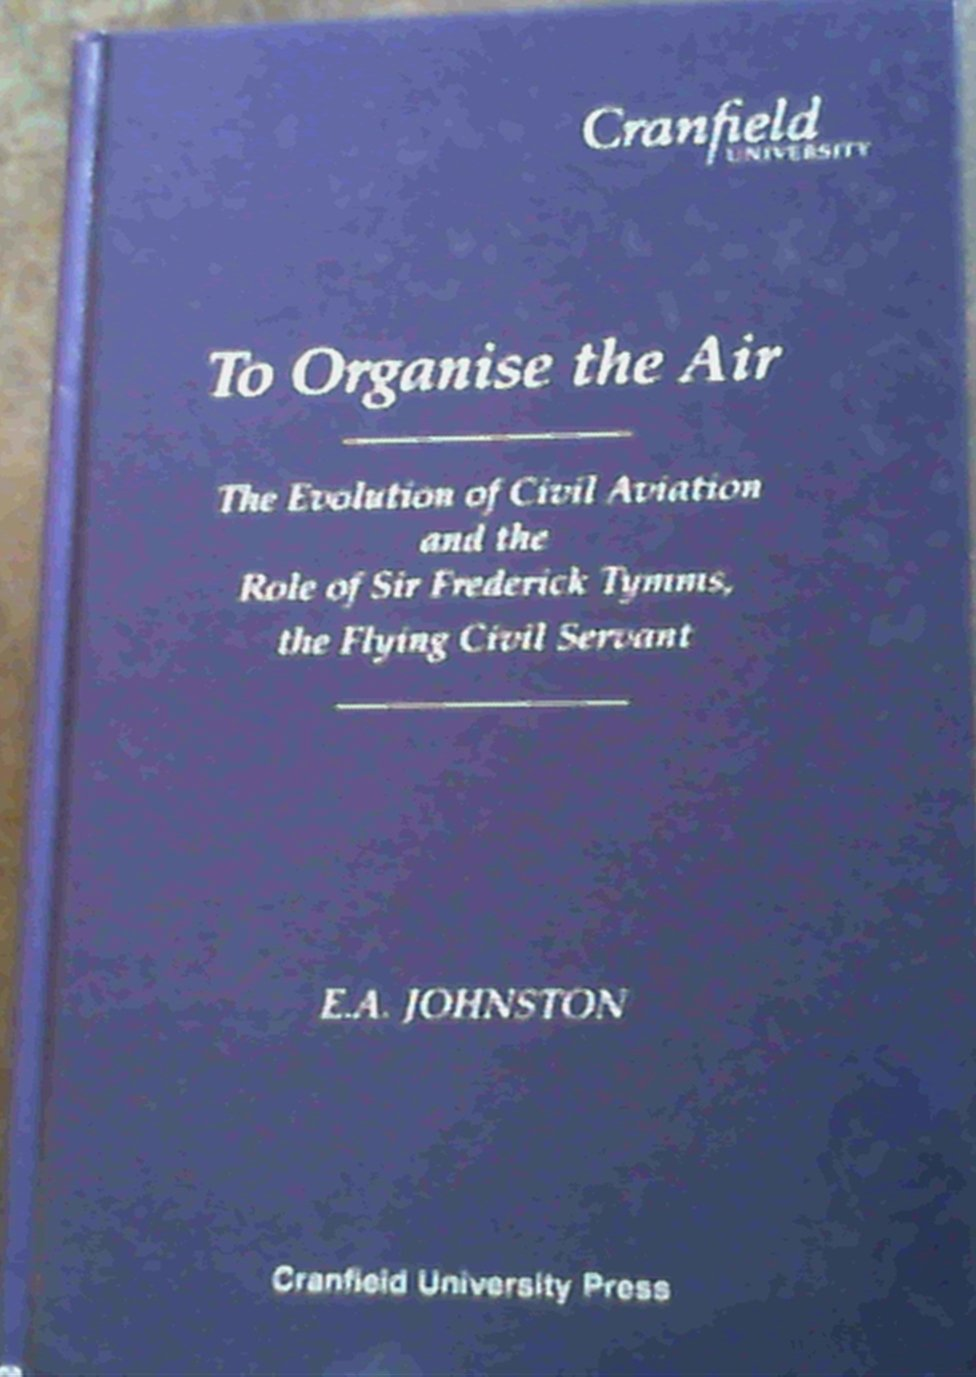 To Organise the Air: Evolution of Civil Aviation and the Role of Sir Frederick Tymms the Flying Civil Servant